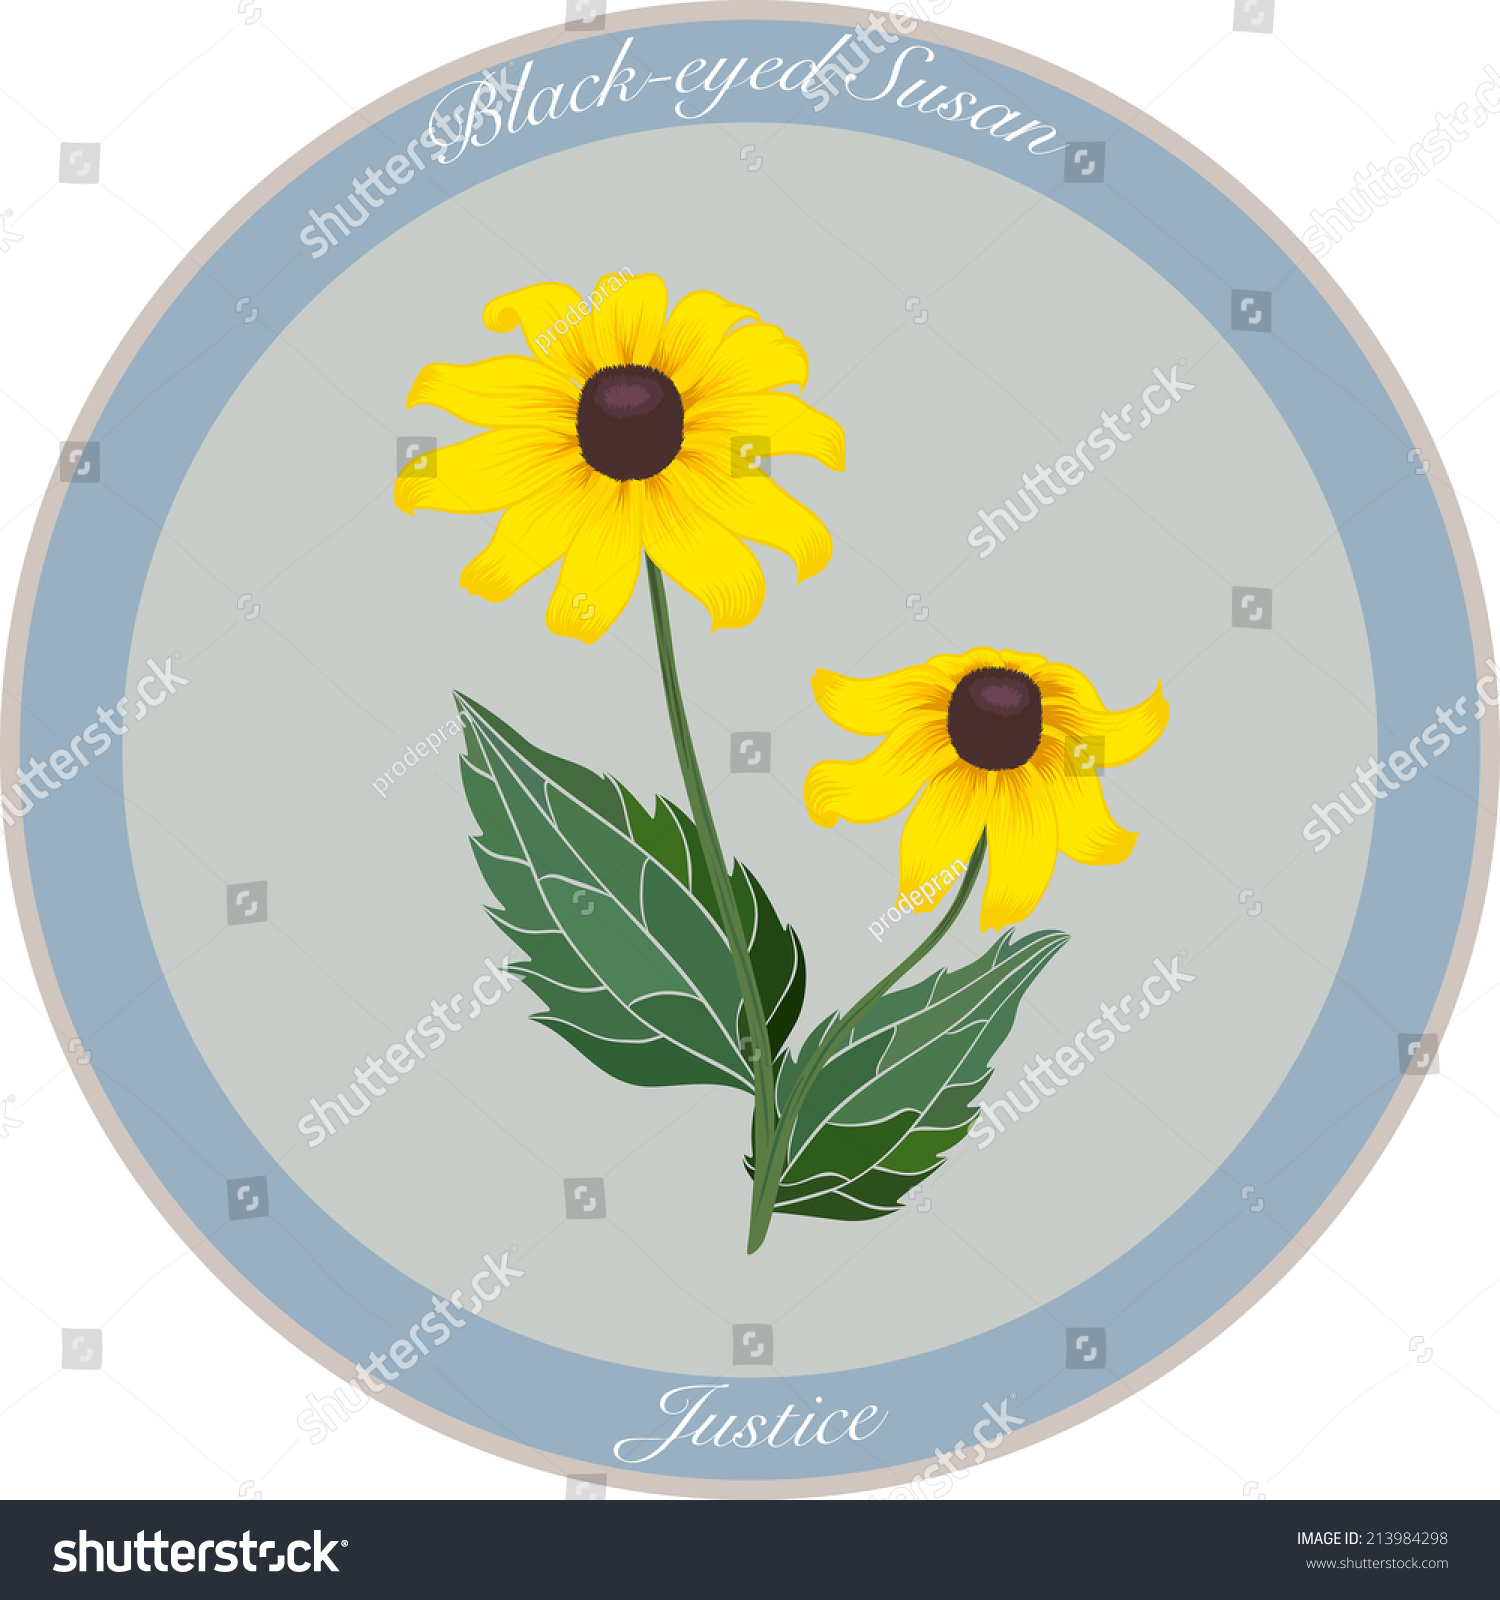 Black Eyed Susan Flower Meaning Justice Stock Vector Royalty Free